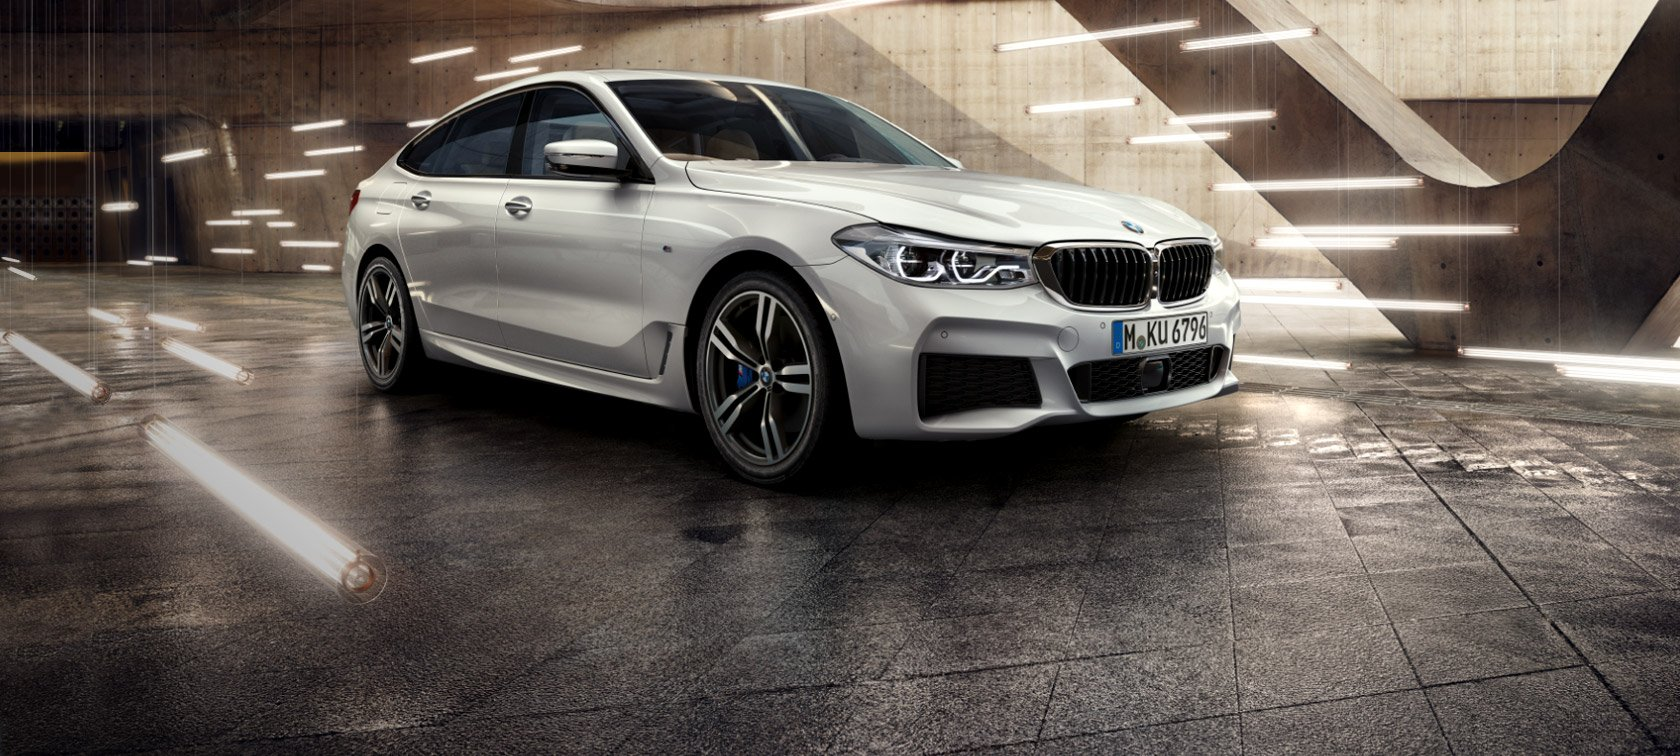 Bmw M4 Price South Africa >> Incredible Photos of Bmw Accessories Price List South Africa HD – Fiat World Test Drive